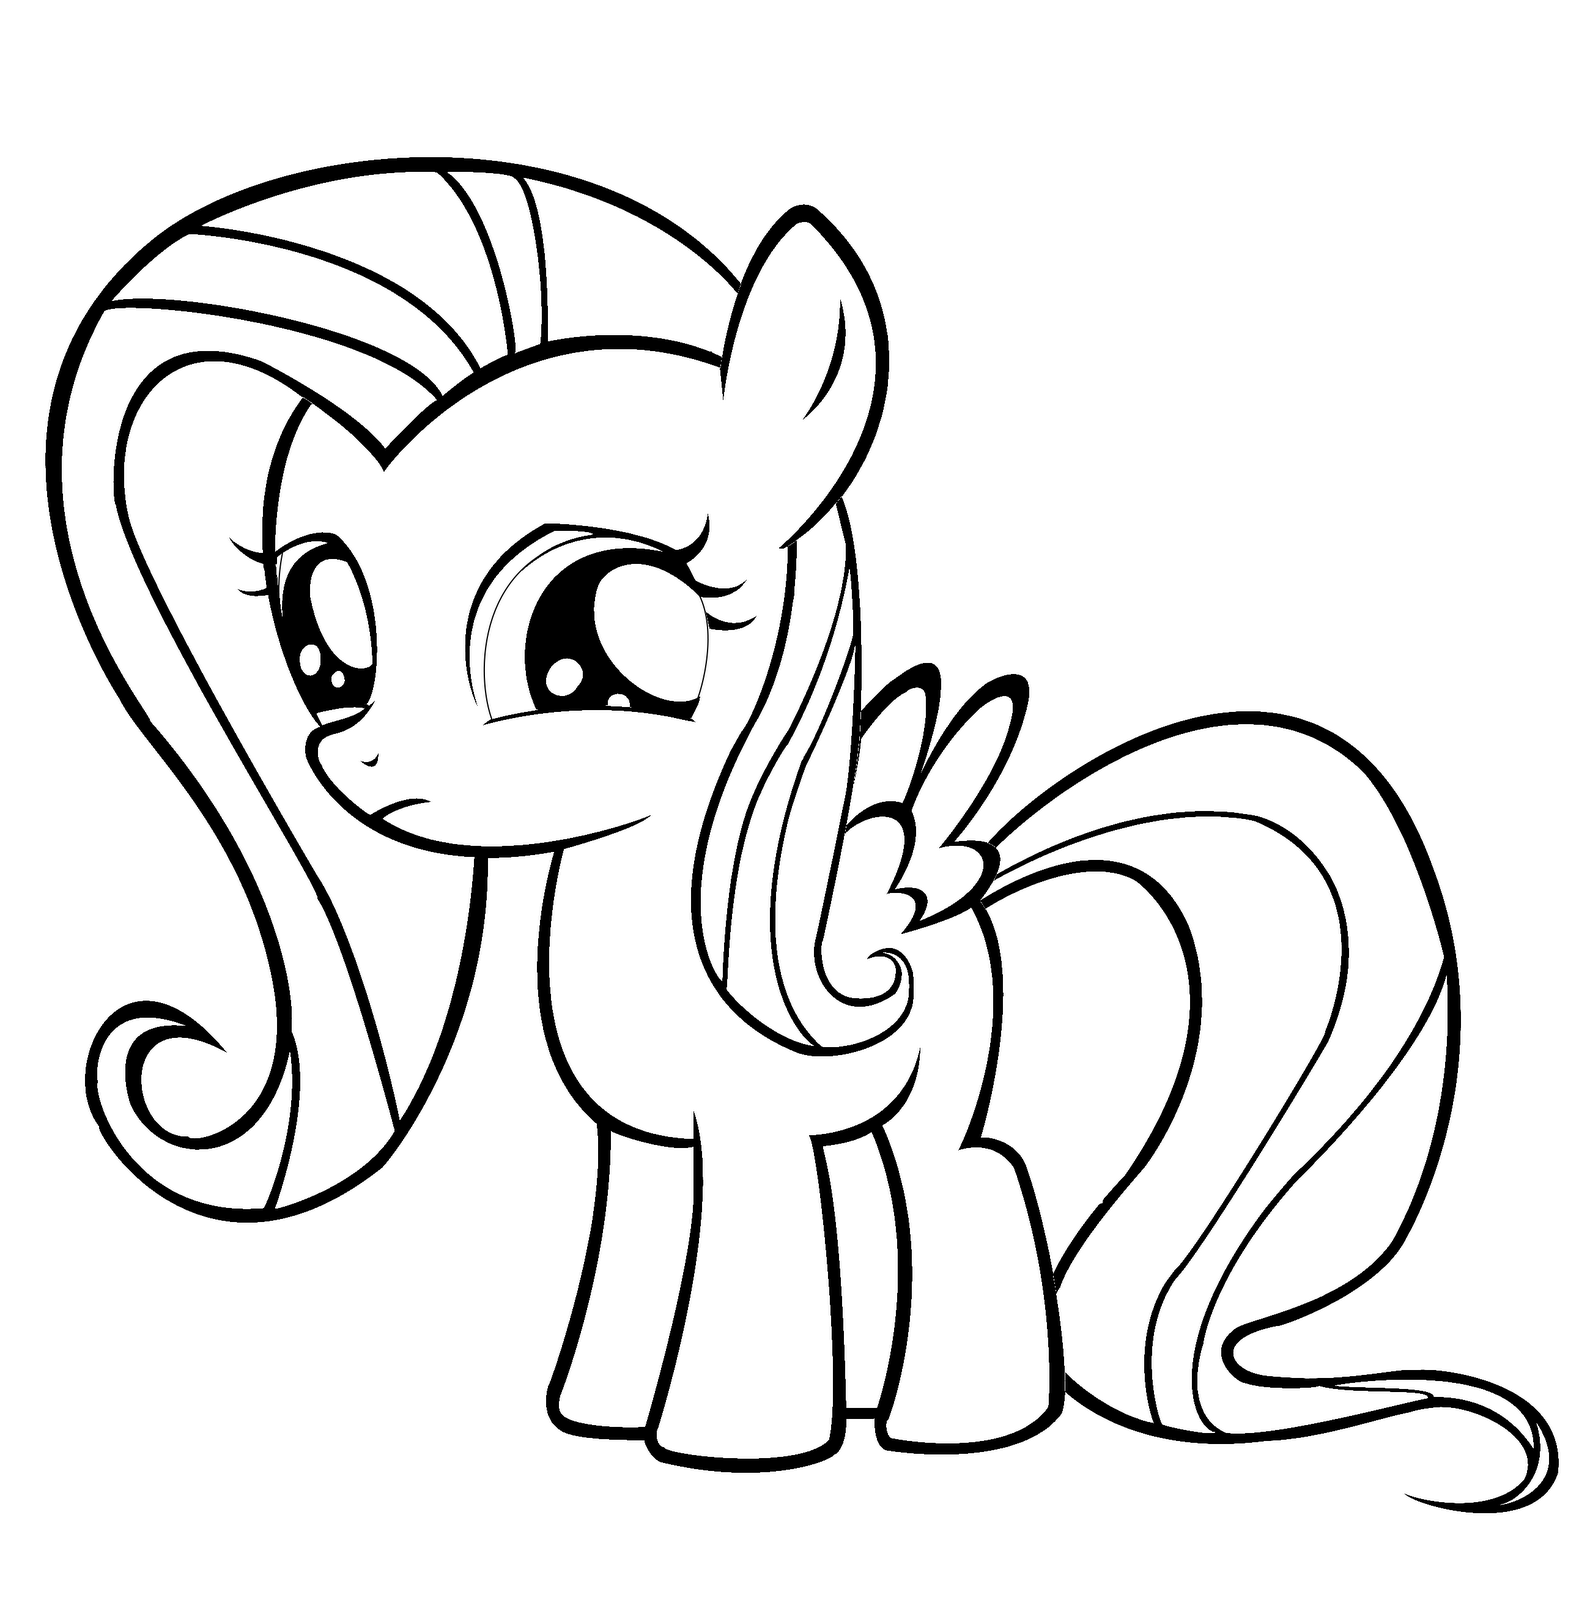 Fluttershy Coloring Pages Best Coloring Pages For Kids Coloring Pages And Printable